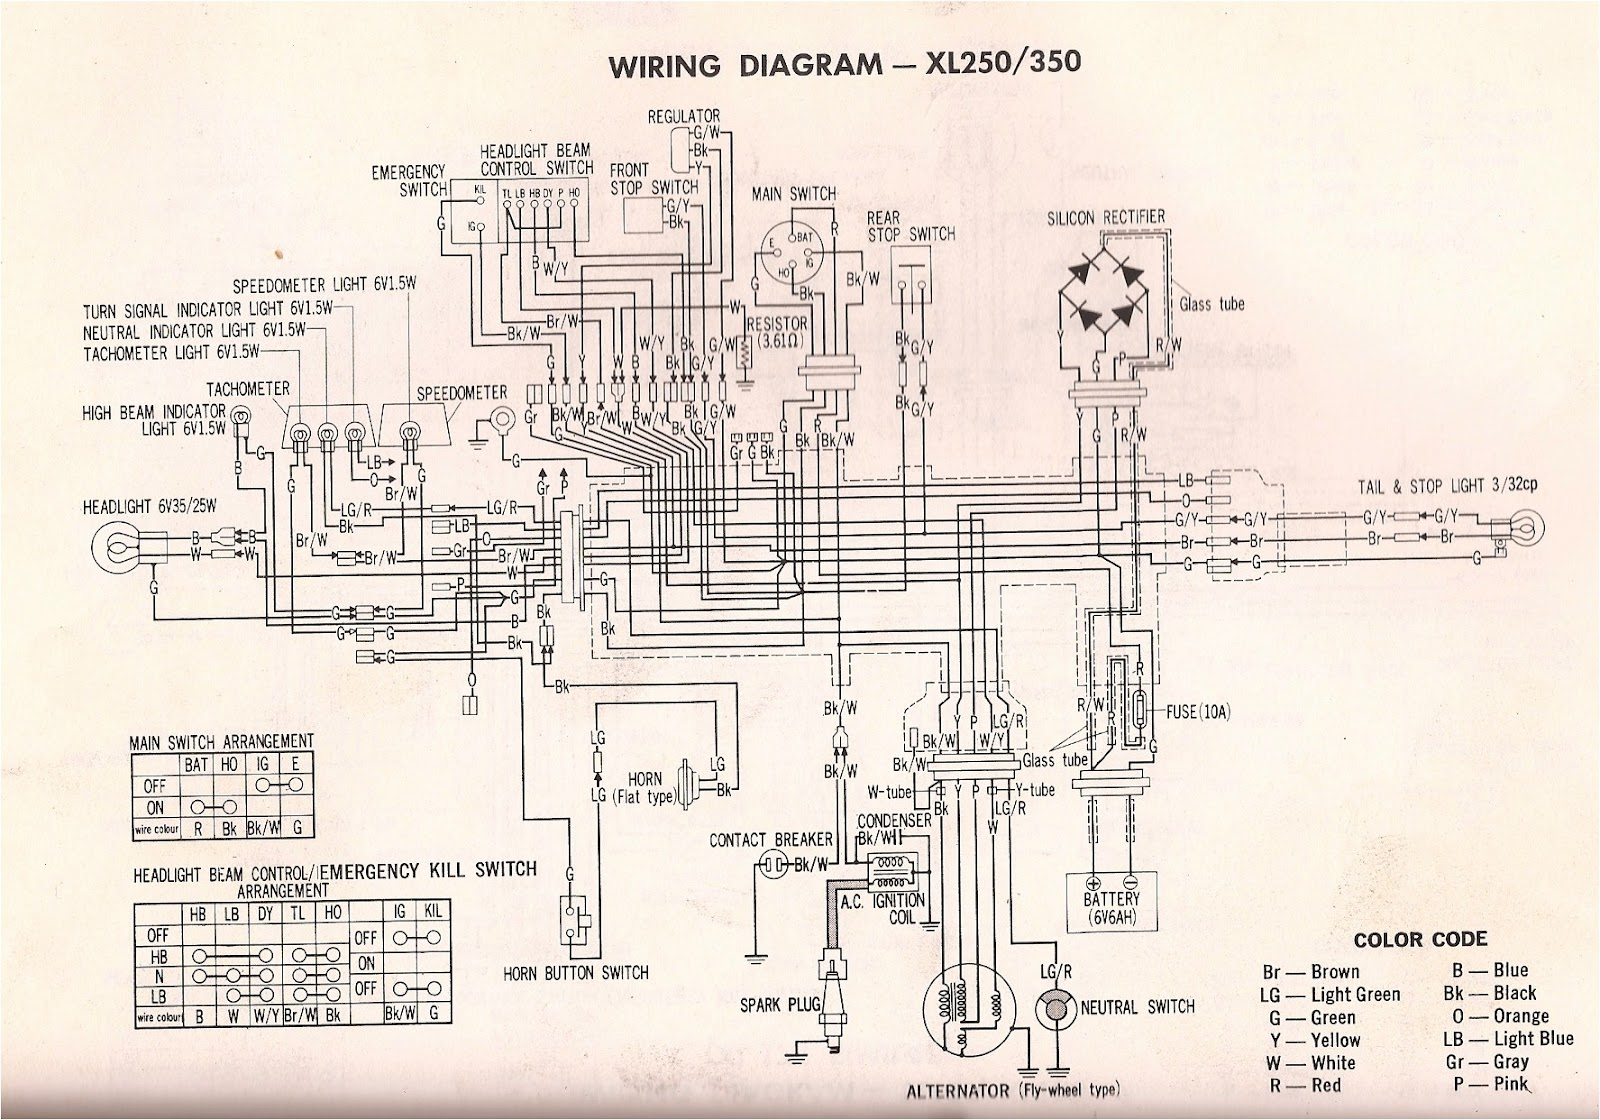 wiring diagram suzuki rc 100 wiring library rc airplane wiring wiring diagram suzuki rc 100 [ 1600 x 1120 Pixel ]